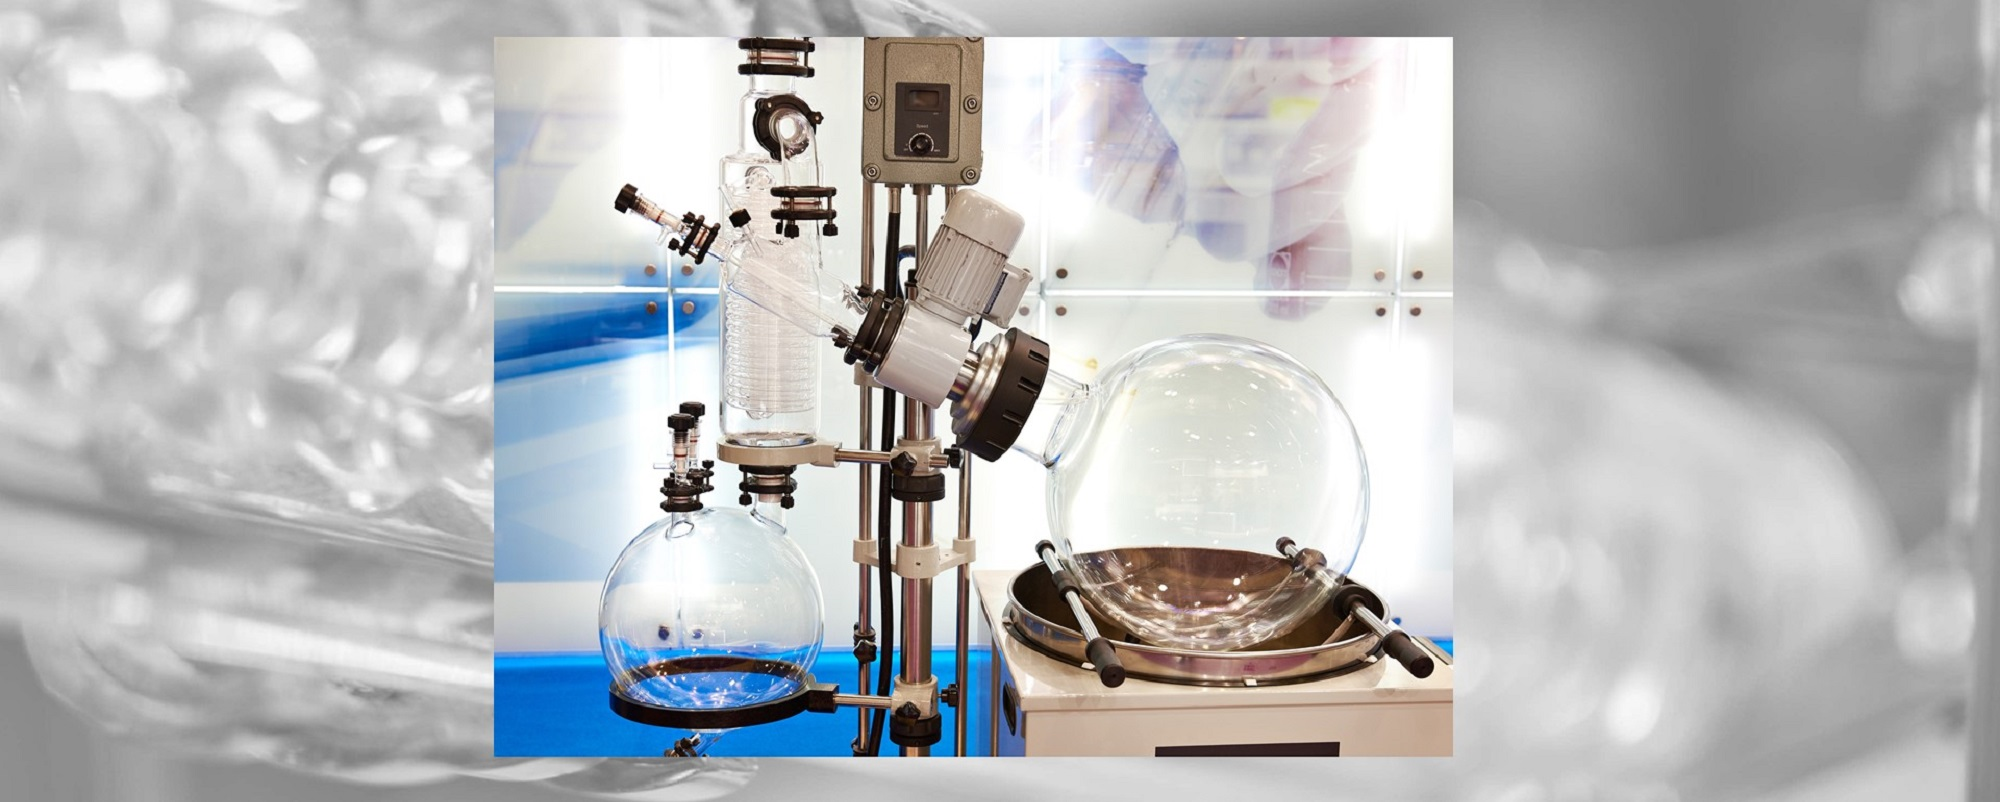 The Rotovap: Fundamentals and Trends in Rotary Evaporator Technologies